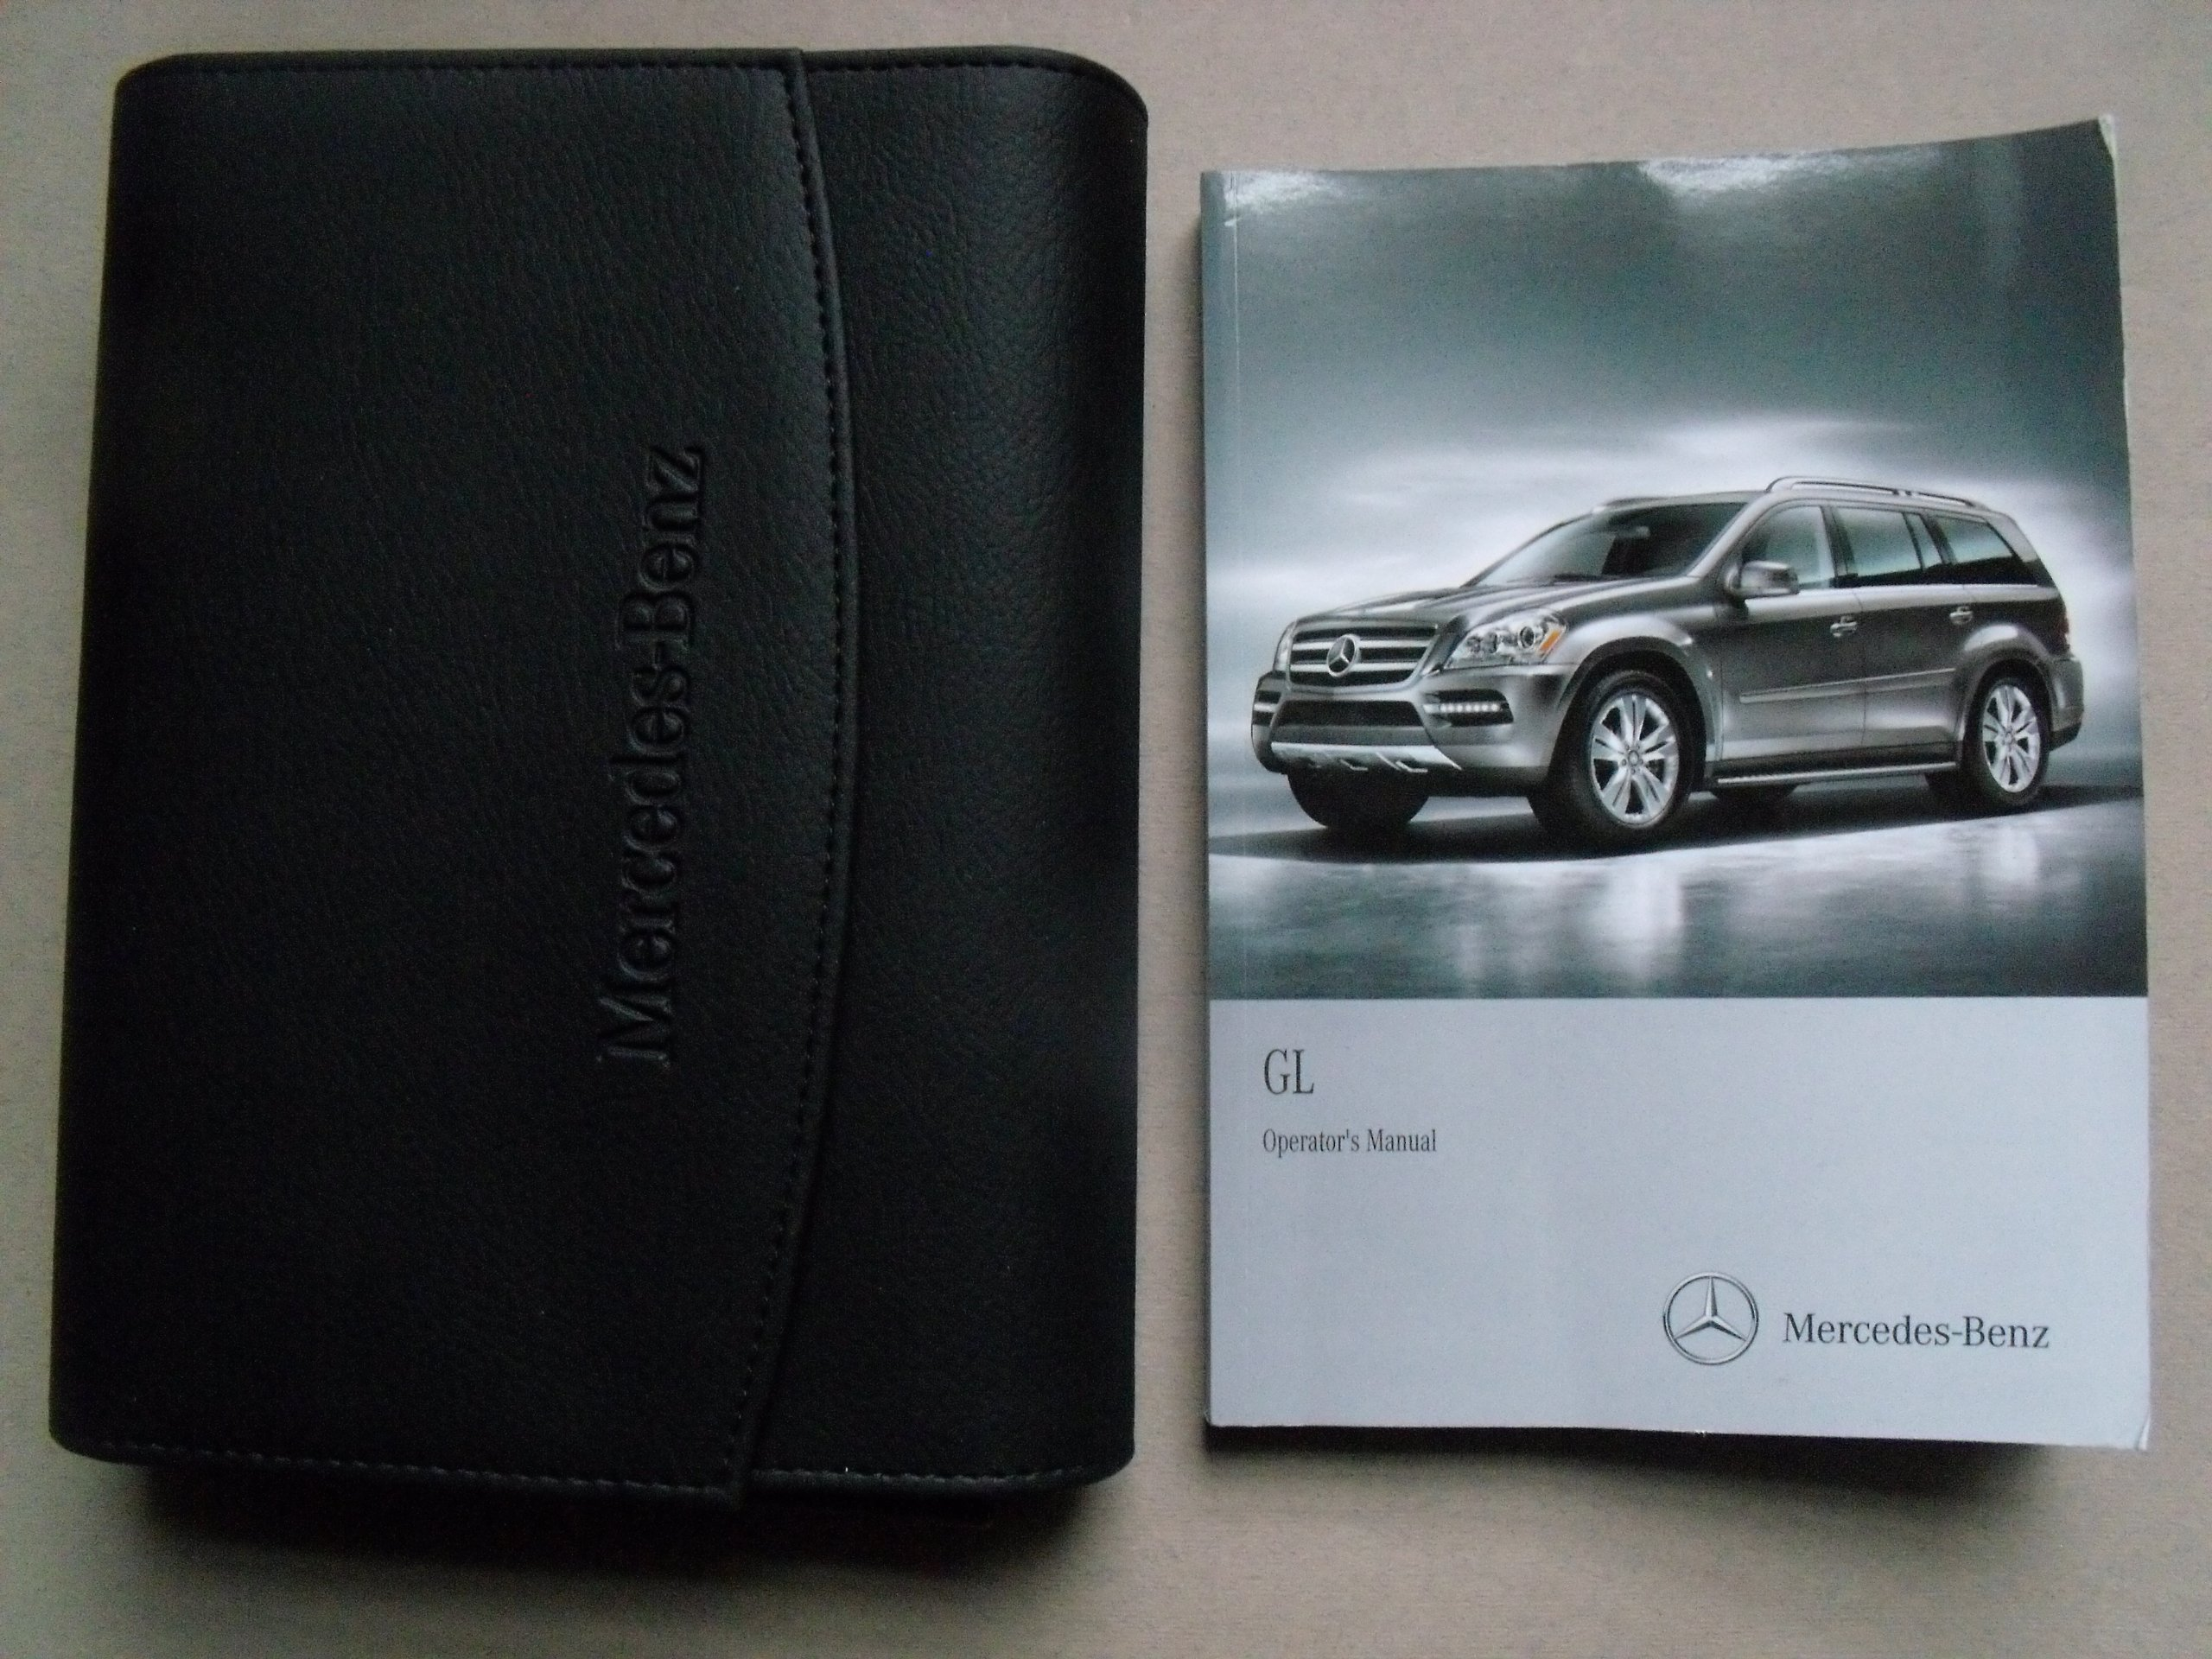 2012 mercedes benz gl owners manual guide book mercedes benz rh amazon com mercedes benz gl450 6v ride-on manual mercedes benz gl450 service manual